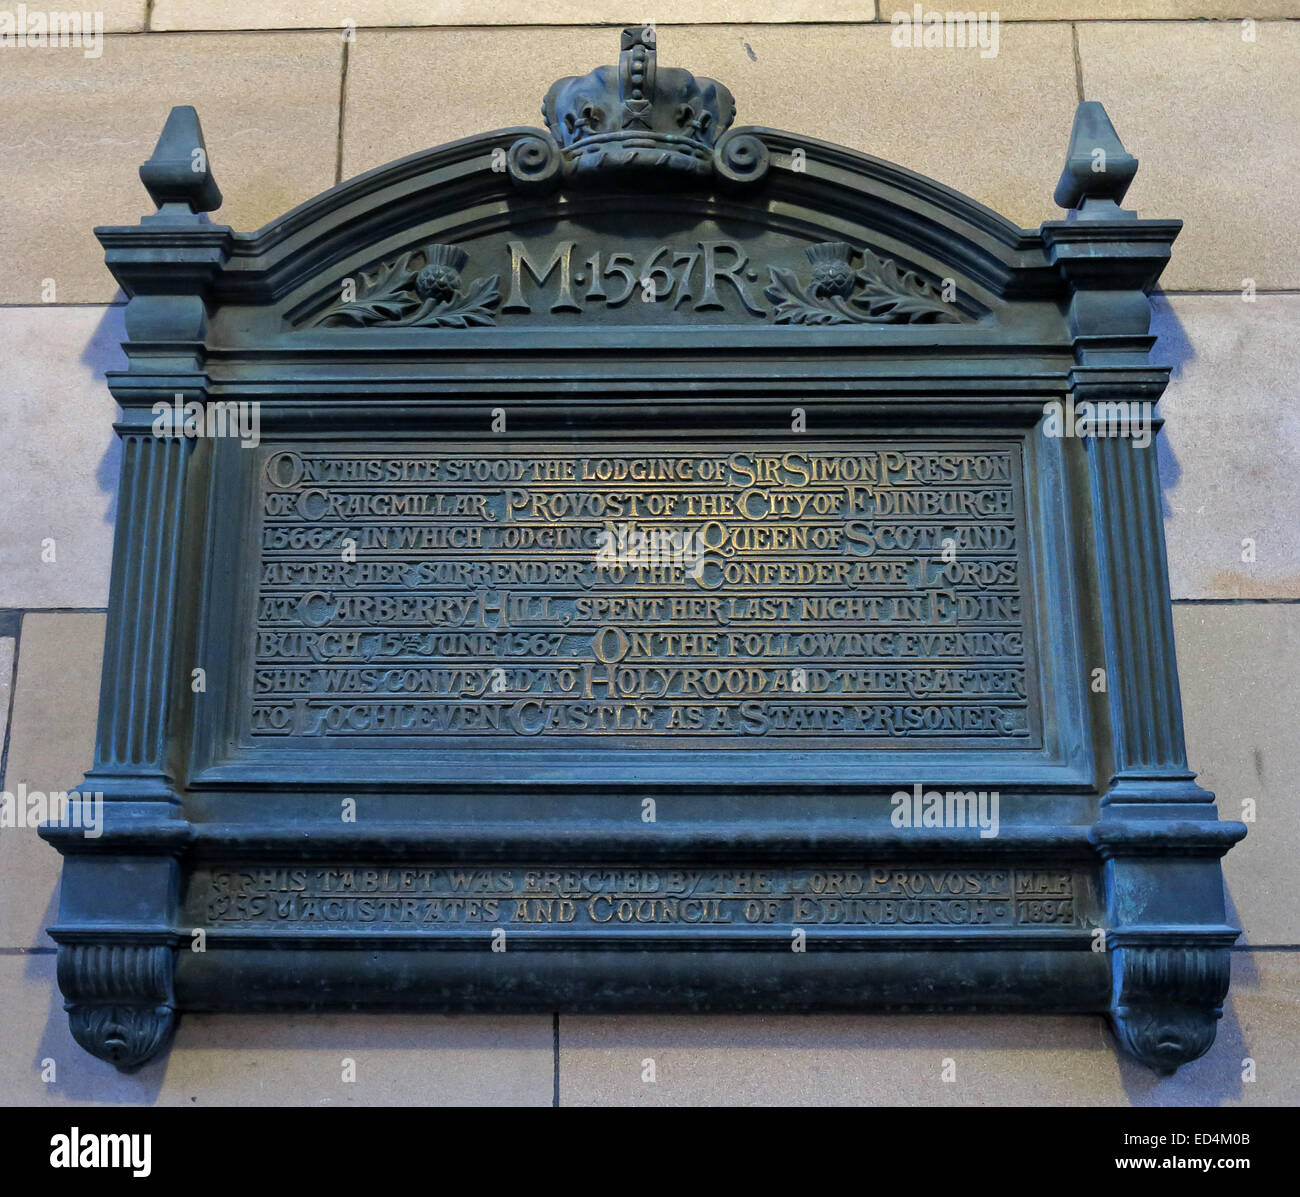 Erected,by,The Lord Provost,Magistrates,and,Council of Edinburgh,Scotland,Scots,Queen of Scots,memorial,Gotonysmith,entrance,to,The,Quadrant,of,the,City Chambers,Edinburgh,253 High Street,Edinburgh,EH1 1YJ,INSCRIPTION,ON,THIS,SITE,STOOD,THE,LODGING,OF,SIR SIMON PRESTON,OF,CRAIGMILLAR,PROVOST,OF THE CITY OF EDINBURGH,1566-7,1566,1567,IN,WHICH,MARY QUEEN OF SCOTLAND,AFTER,HER,SURRENDER,TO THE,CONFEDERATE LORDS,LORDS,AT CARBERRY HILL,SPENT HER LAST NIGHT IN,15TH JUNE 1567,EVENING SHE WAS,CONVEYED,HOLYROOD,AND THEREAFTER TO,LOCHLEVEN CASTLE,AS A,STATE PRISONER,THIS,TABLET,WAS,ERECTED,BY,THE,LORD,PROVOST,MAGISTRATES,AND,COUNCIL,OF,EDINBURGH,MAR,1894